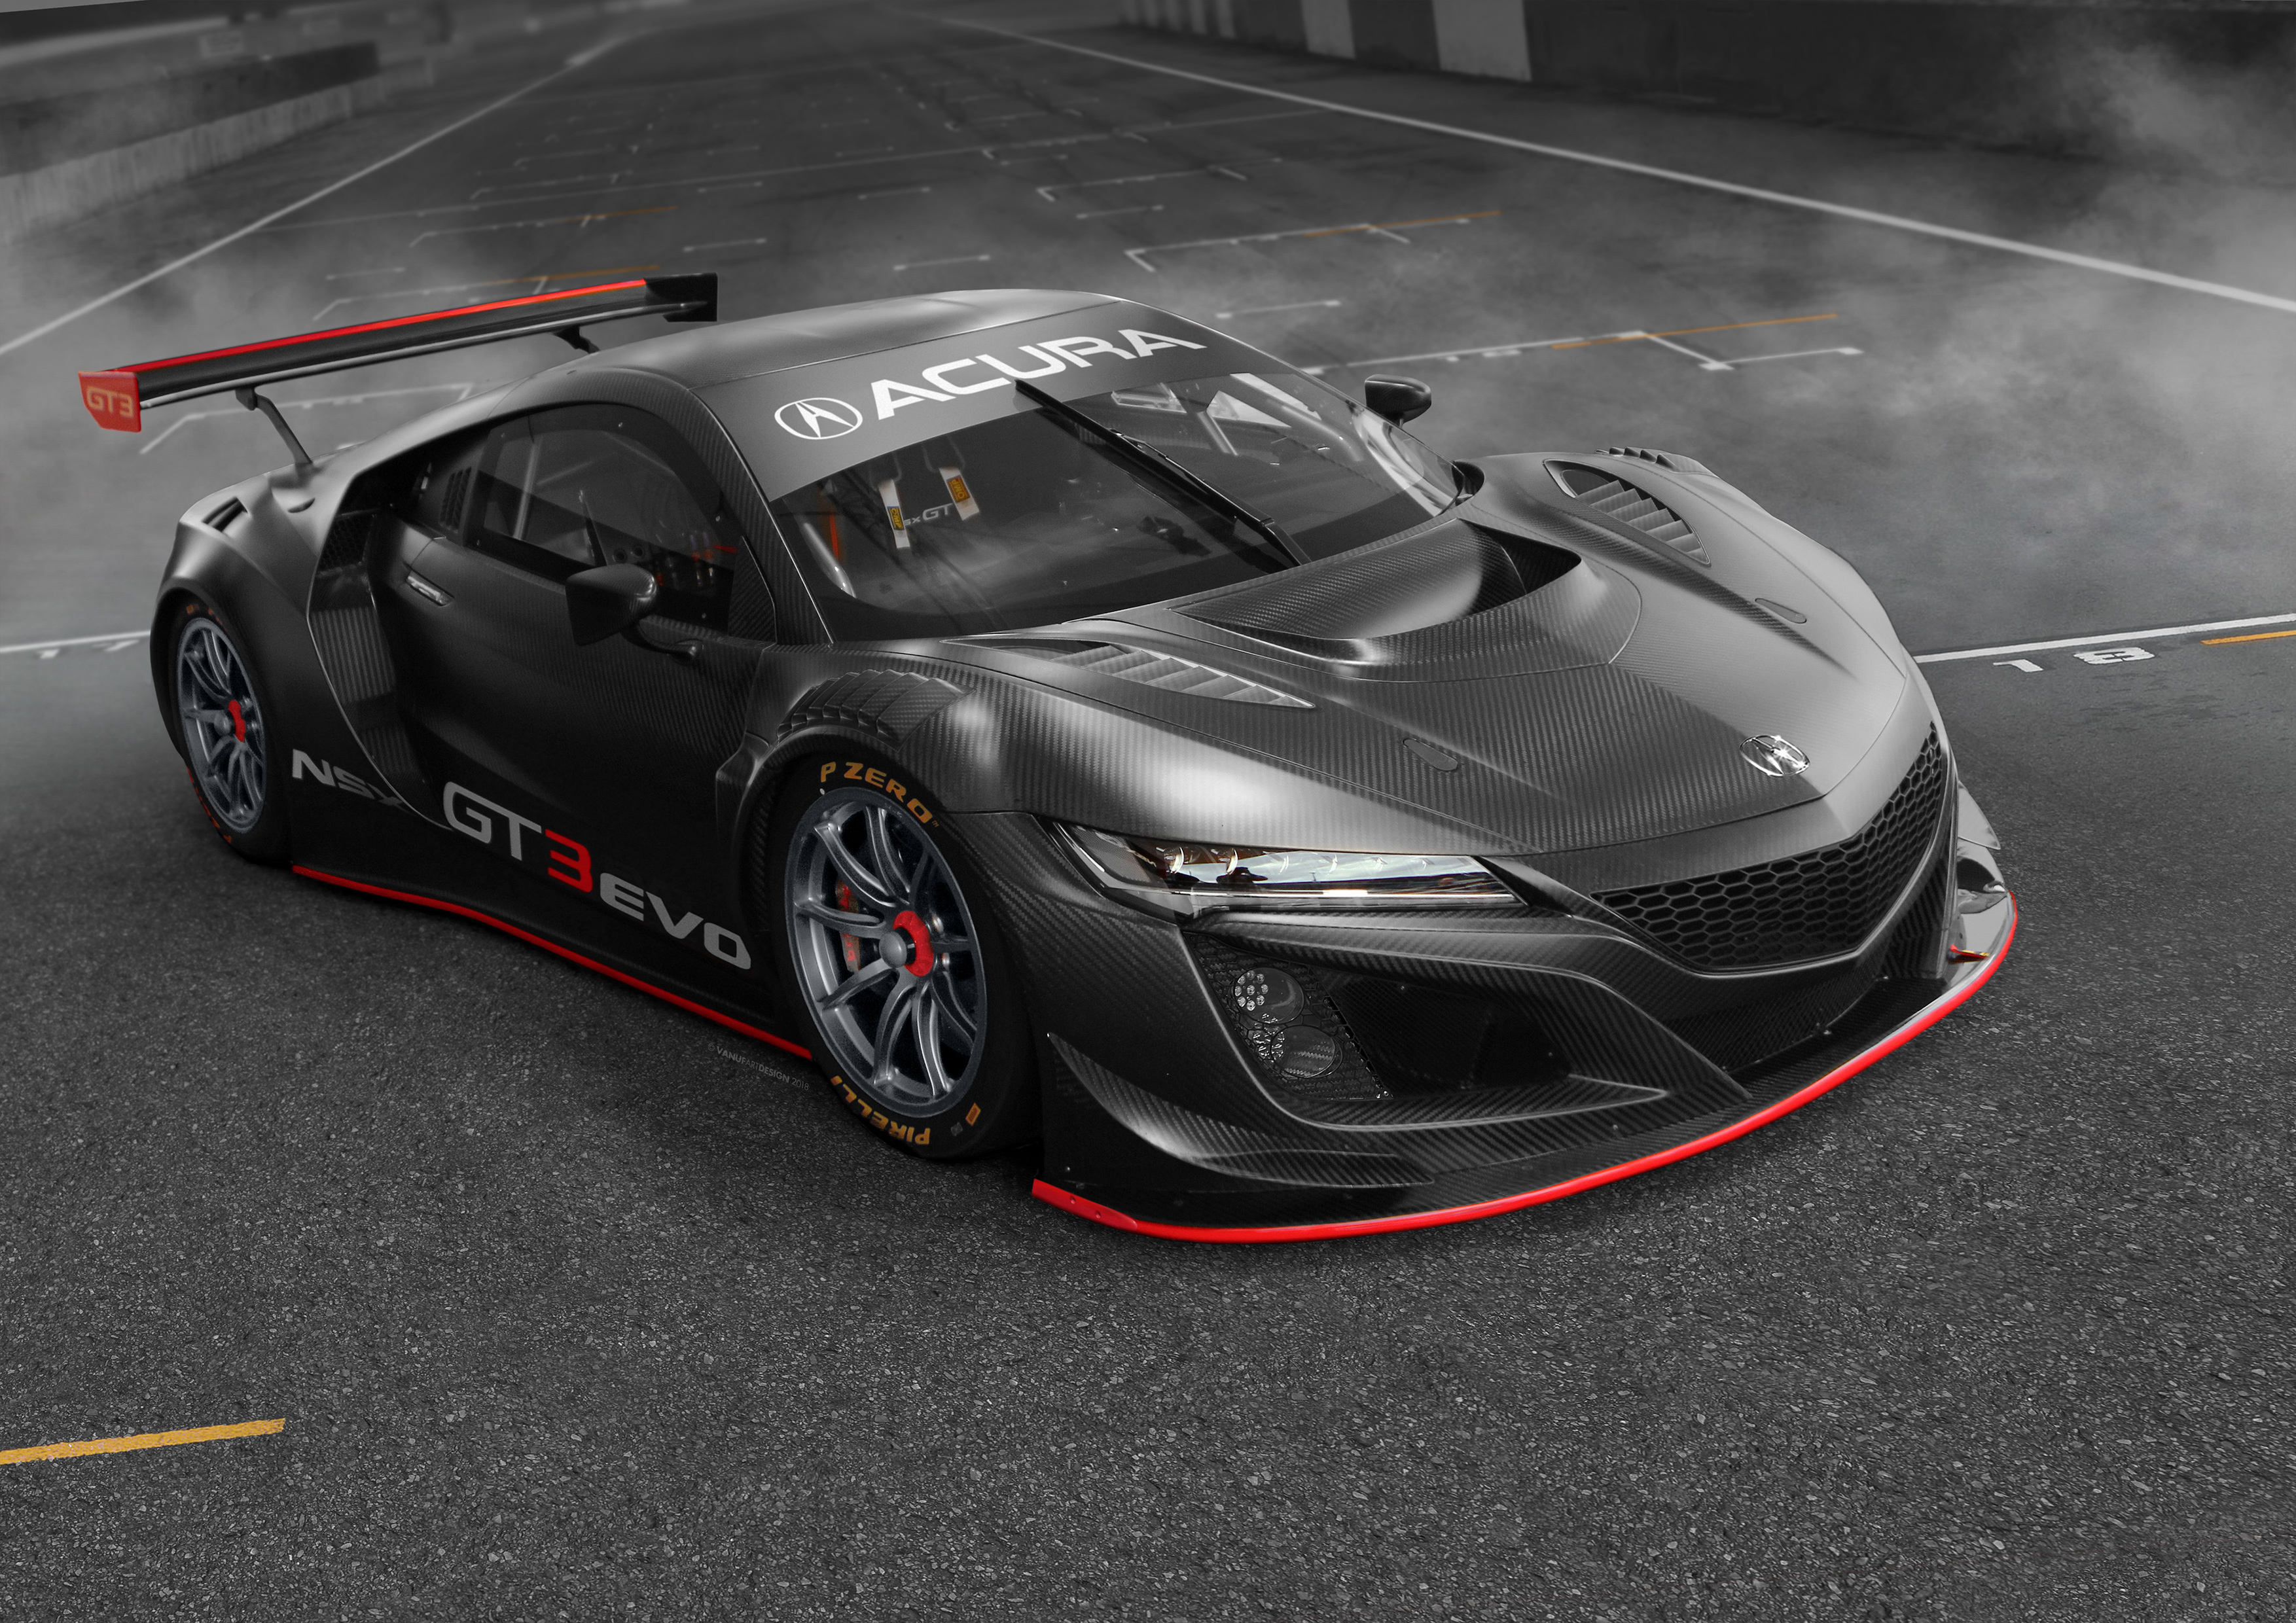 Acura Nsx Gt3 Evo 2019 Hd Cars 4k Wallpapers Images Backgrounds